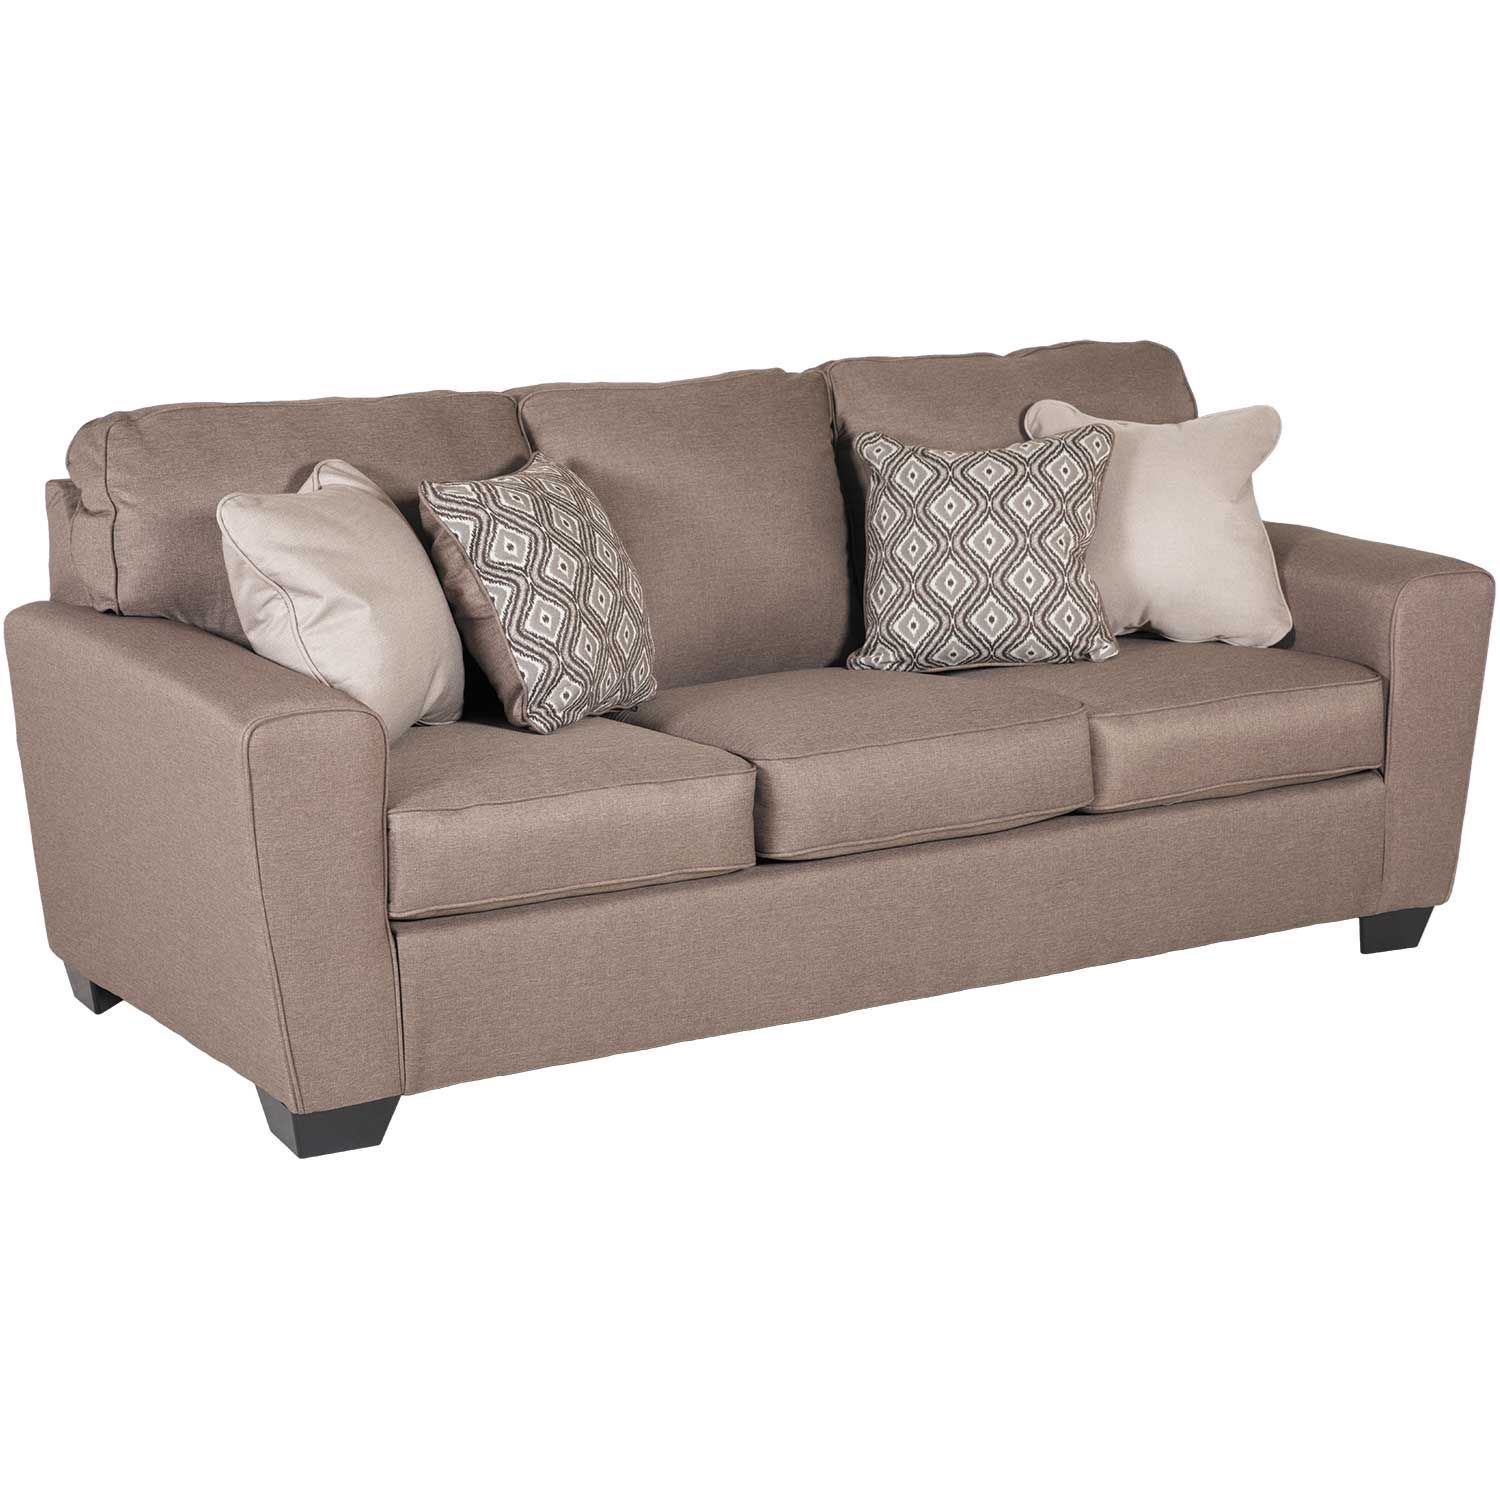 Calicho Cashmere Queen Sleeper Sofa